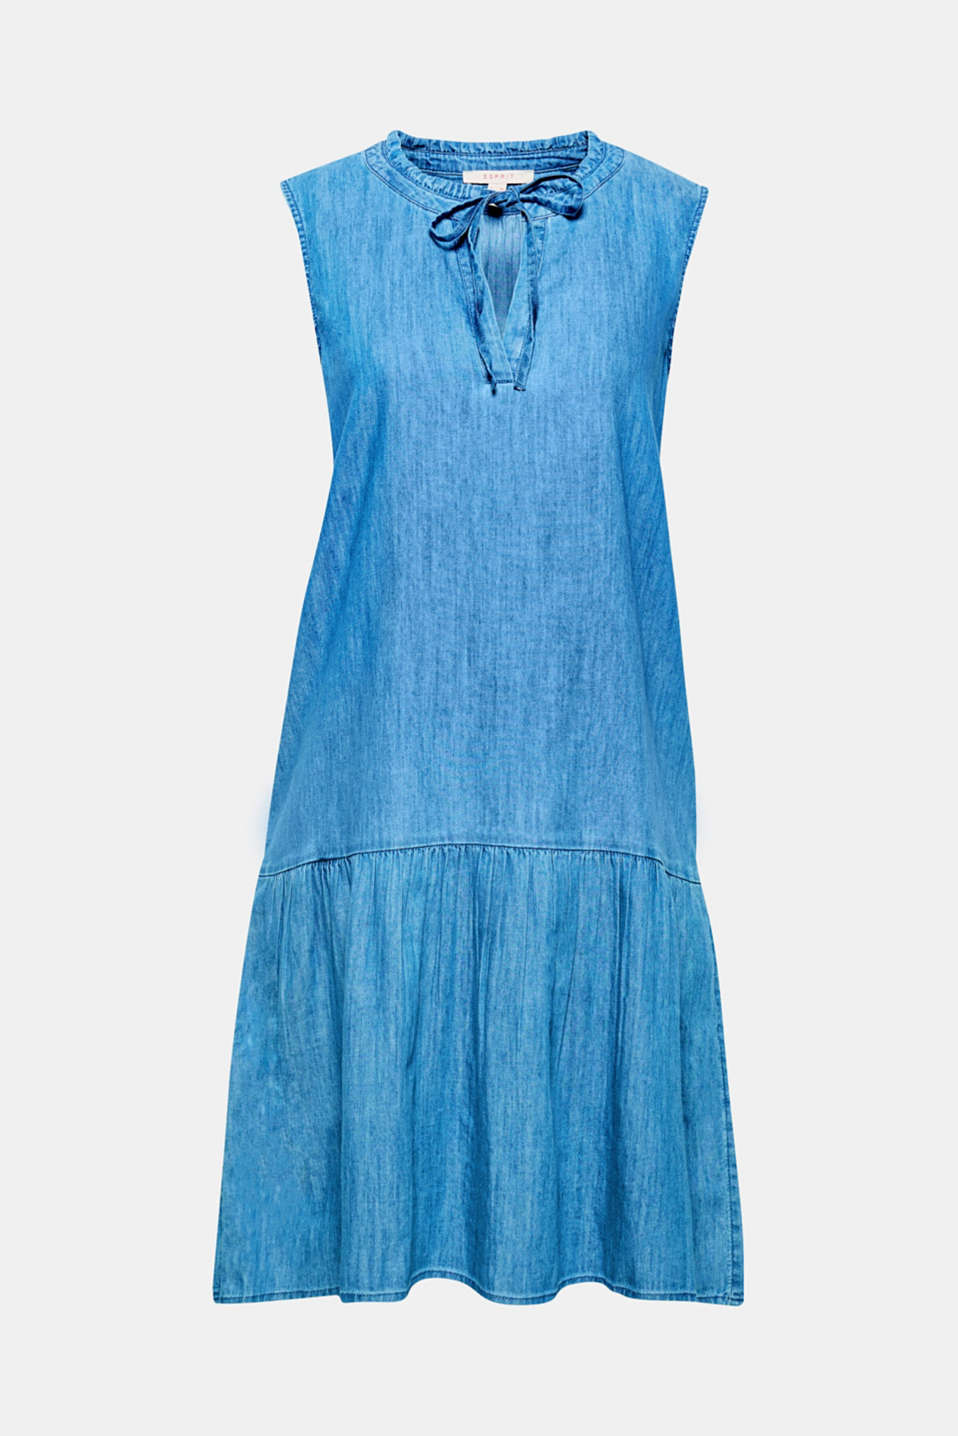 This denim dress is particularly lightweight and features romantic frills at the neckline and a swirling skirt!